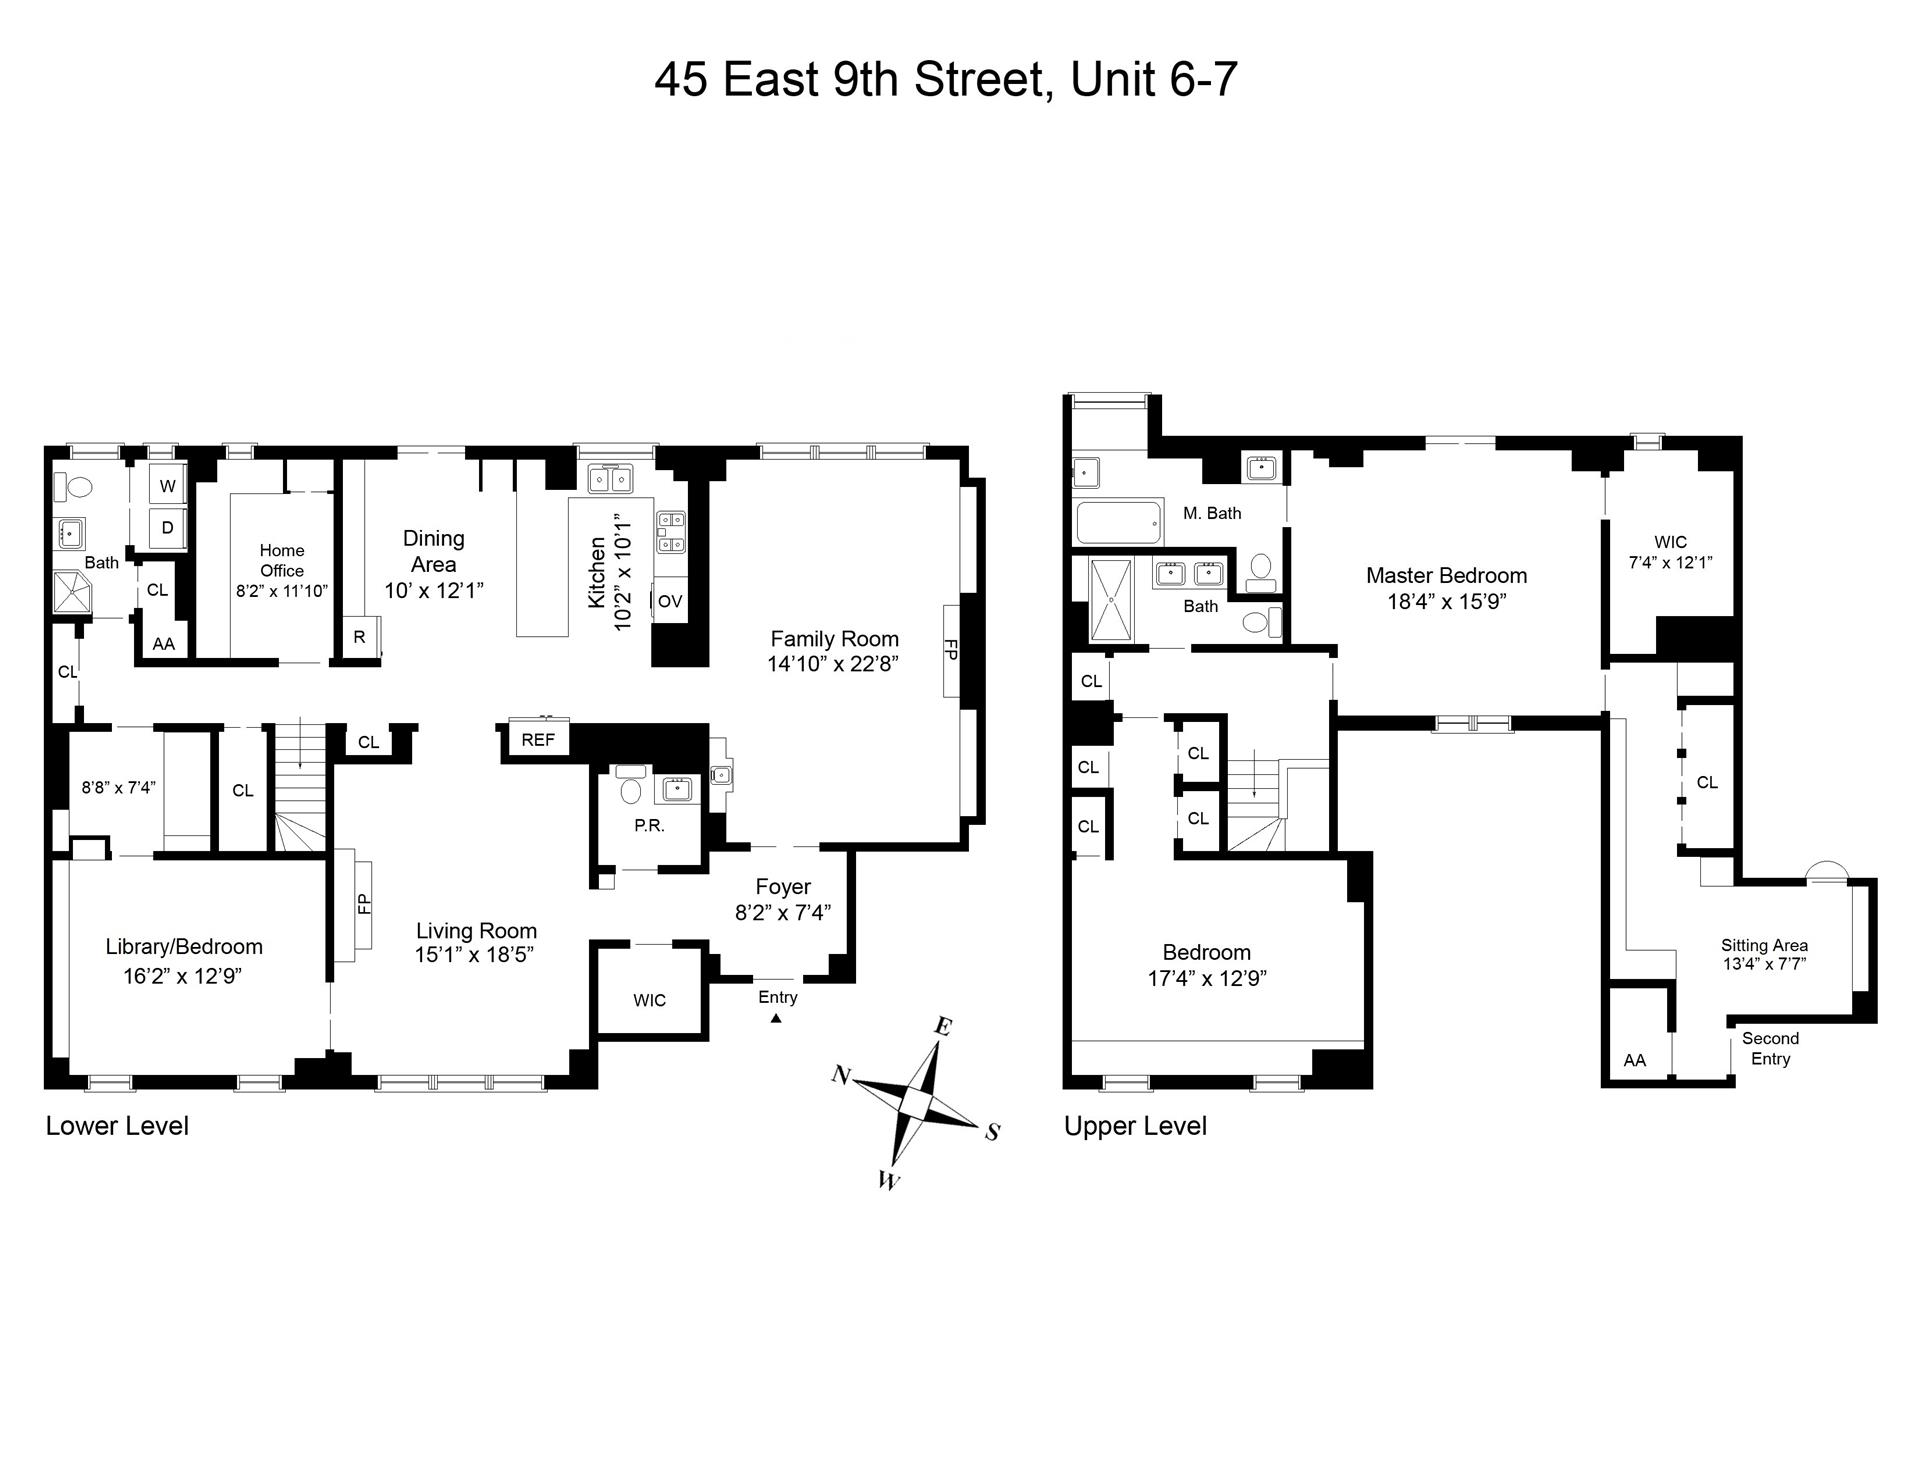 Floor plan of 29-45 Tenants Corp. *, 45 East 9th St, 6/7 - Greenwich Village, New York